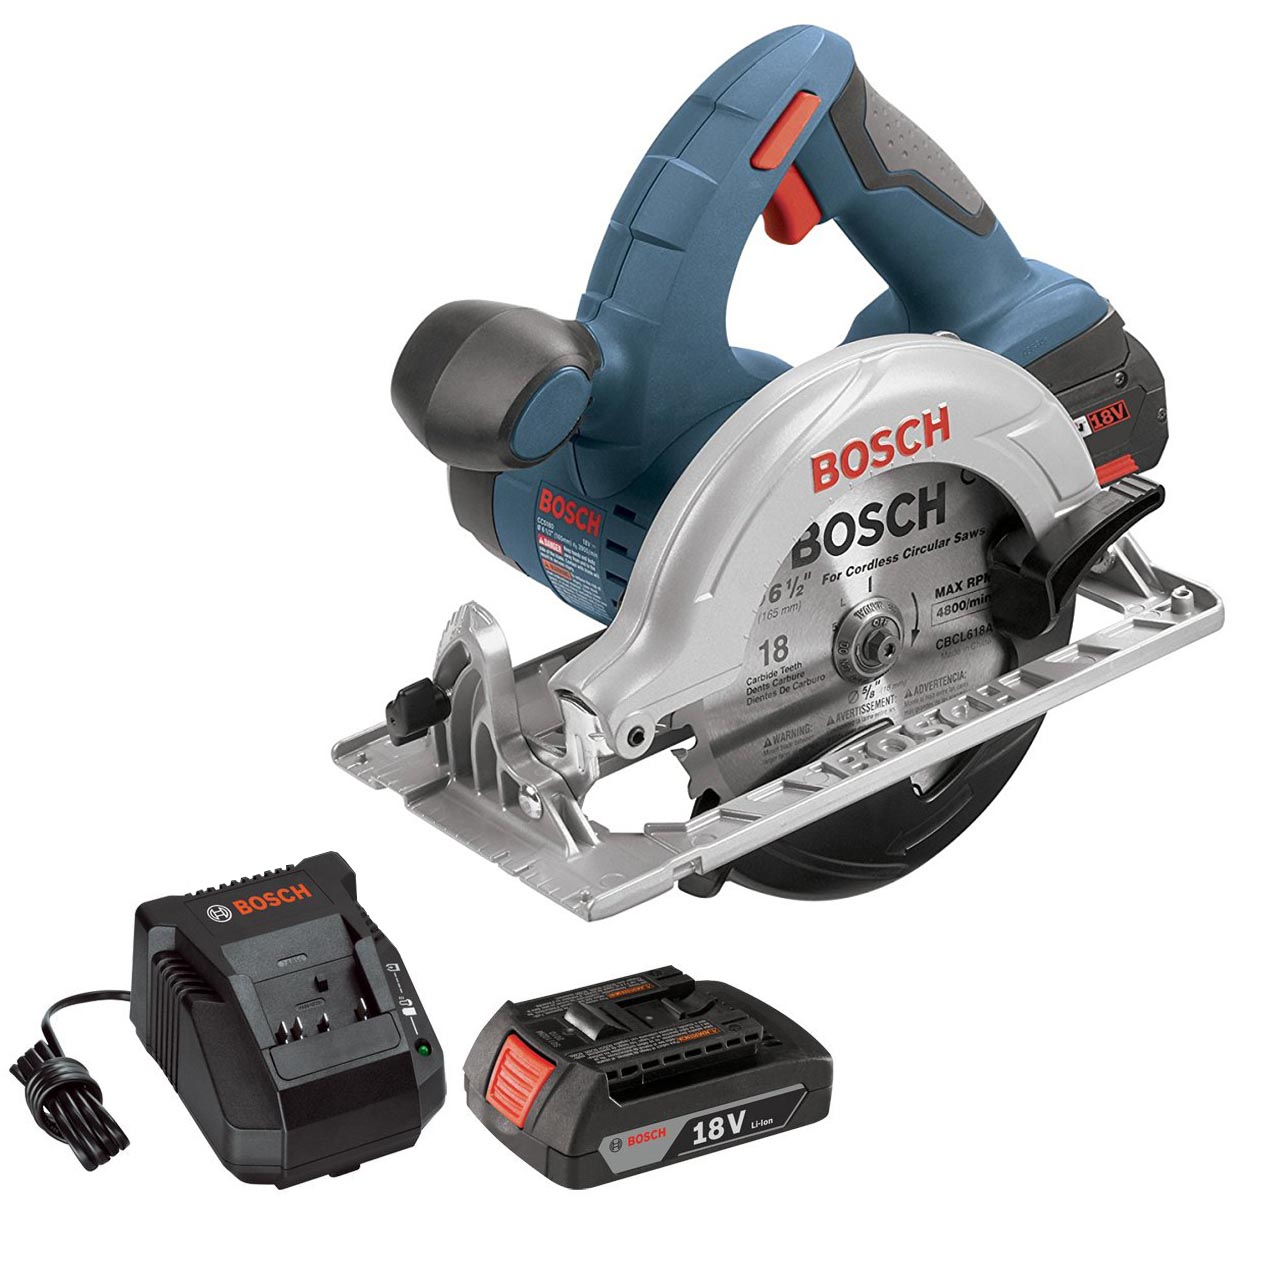 bosch 18v 6 5 cordless circular saw battery charger certified refurbished ebay. Black Bedroom Furniture Sets. Home Design Ideas